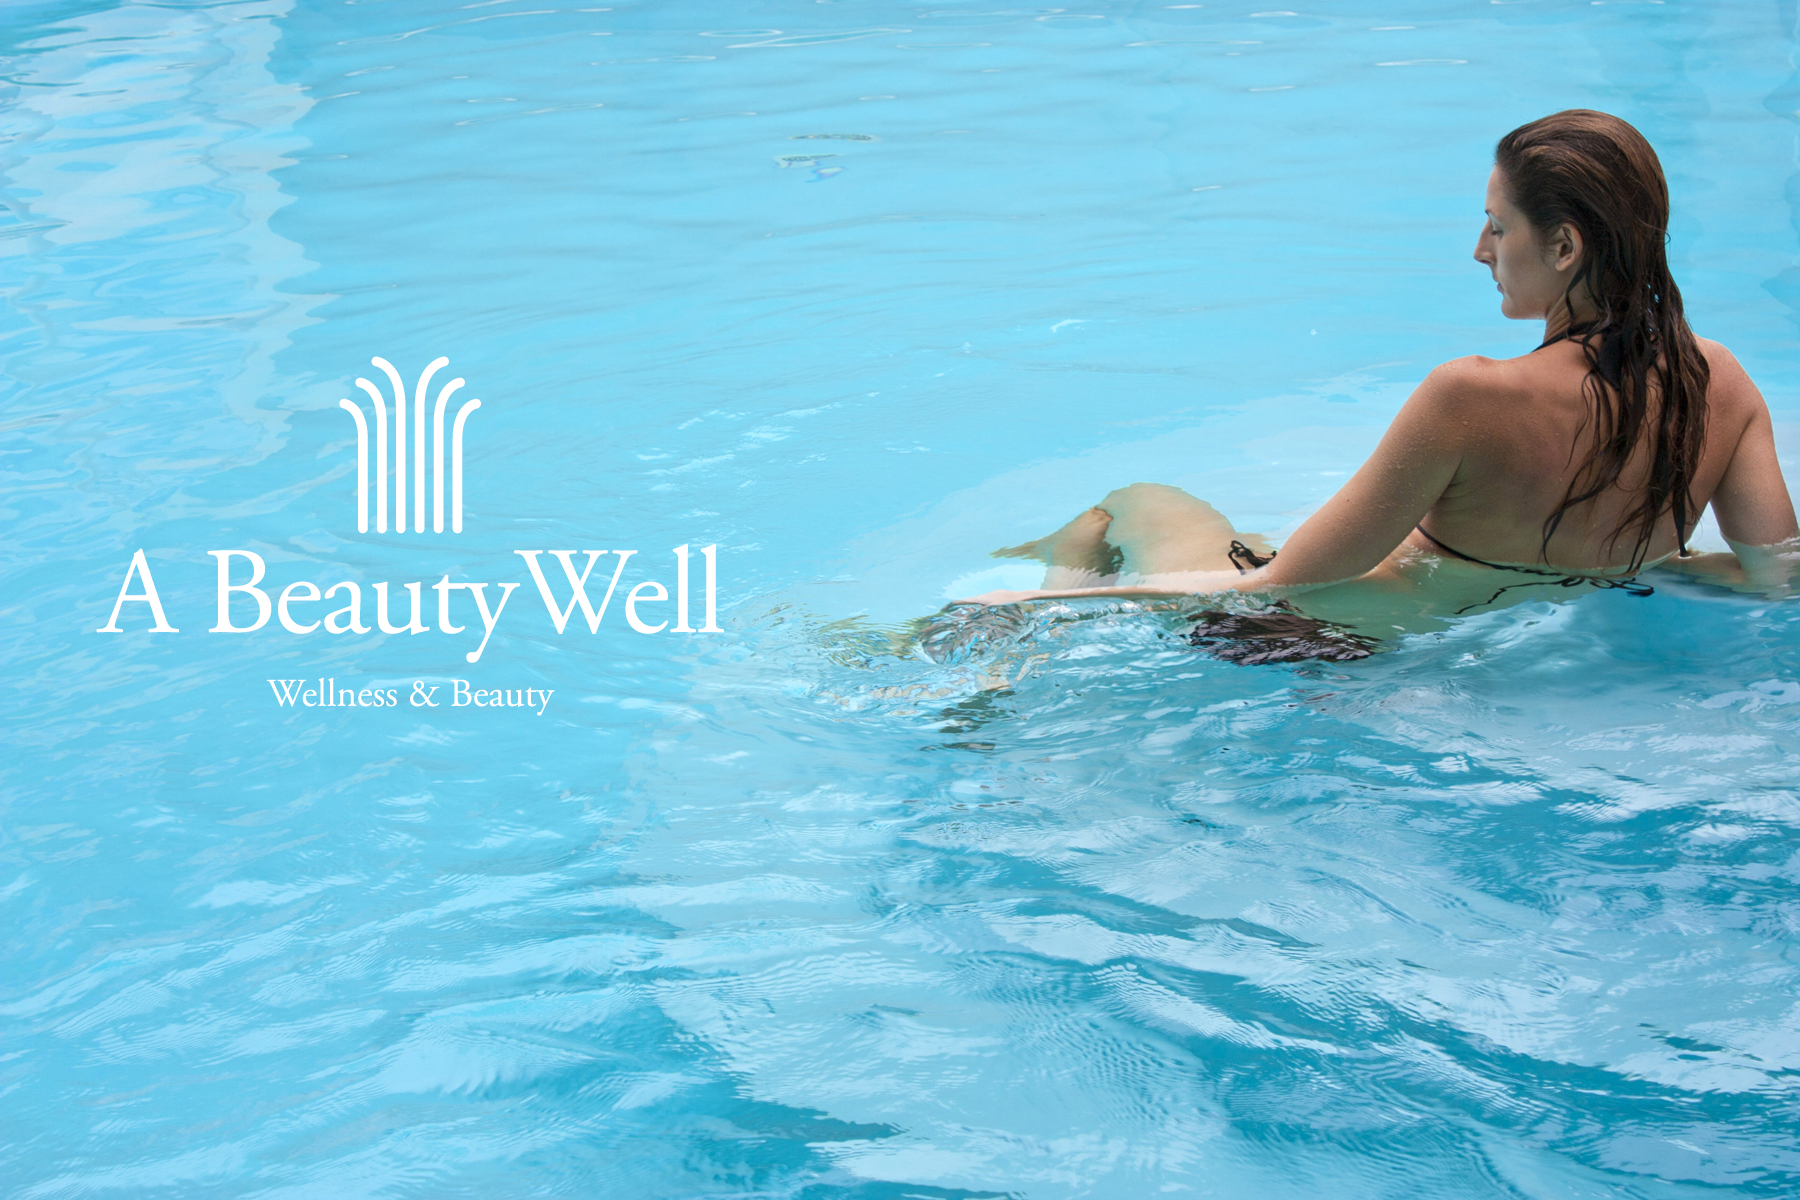 A Beauty Well Branding